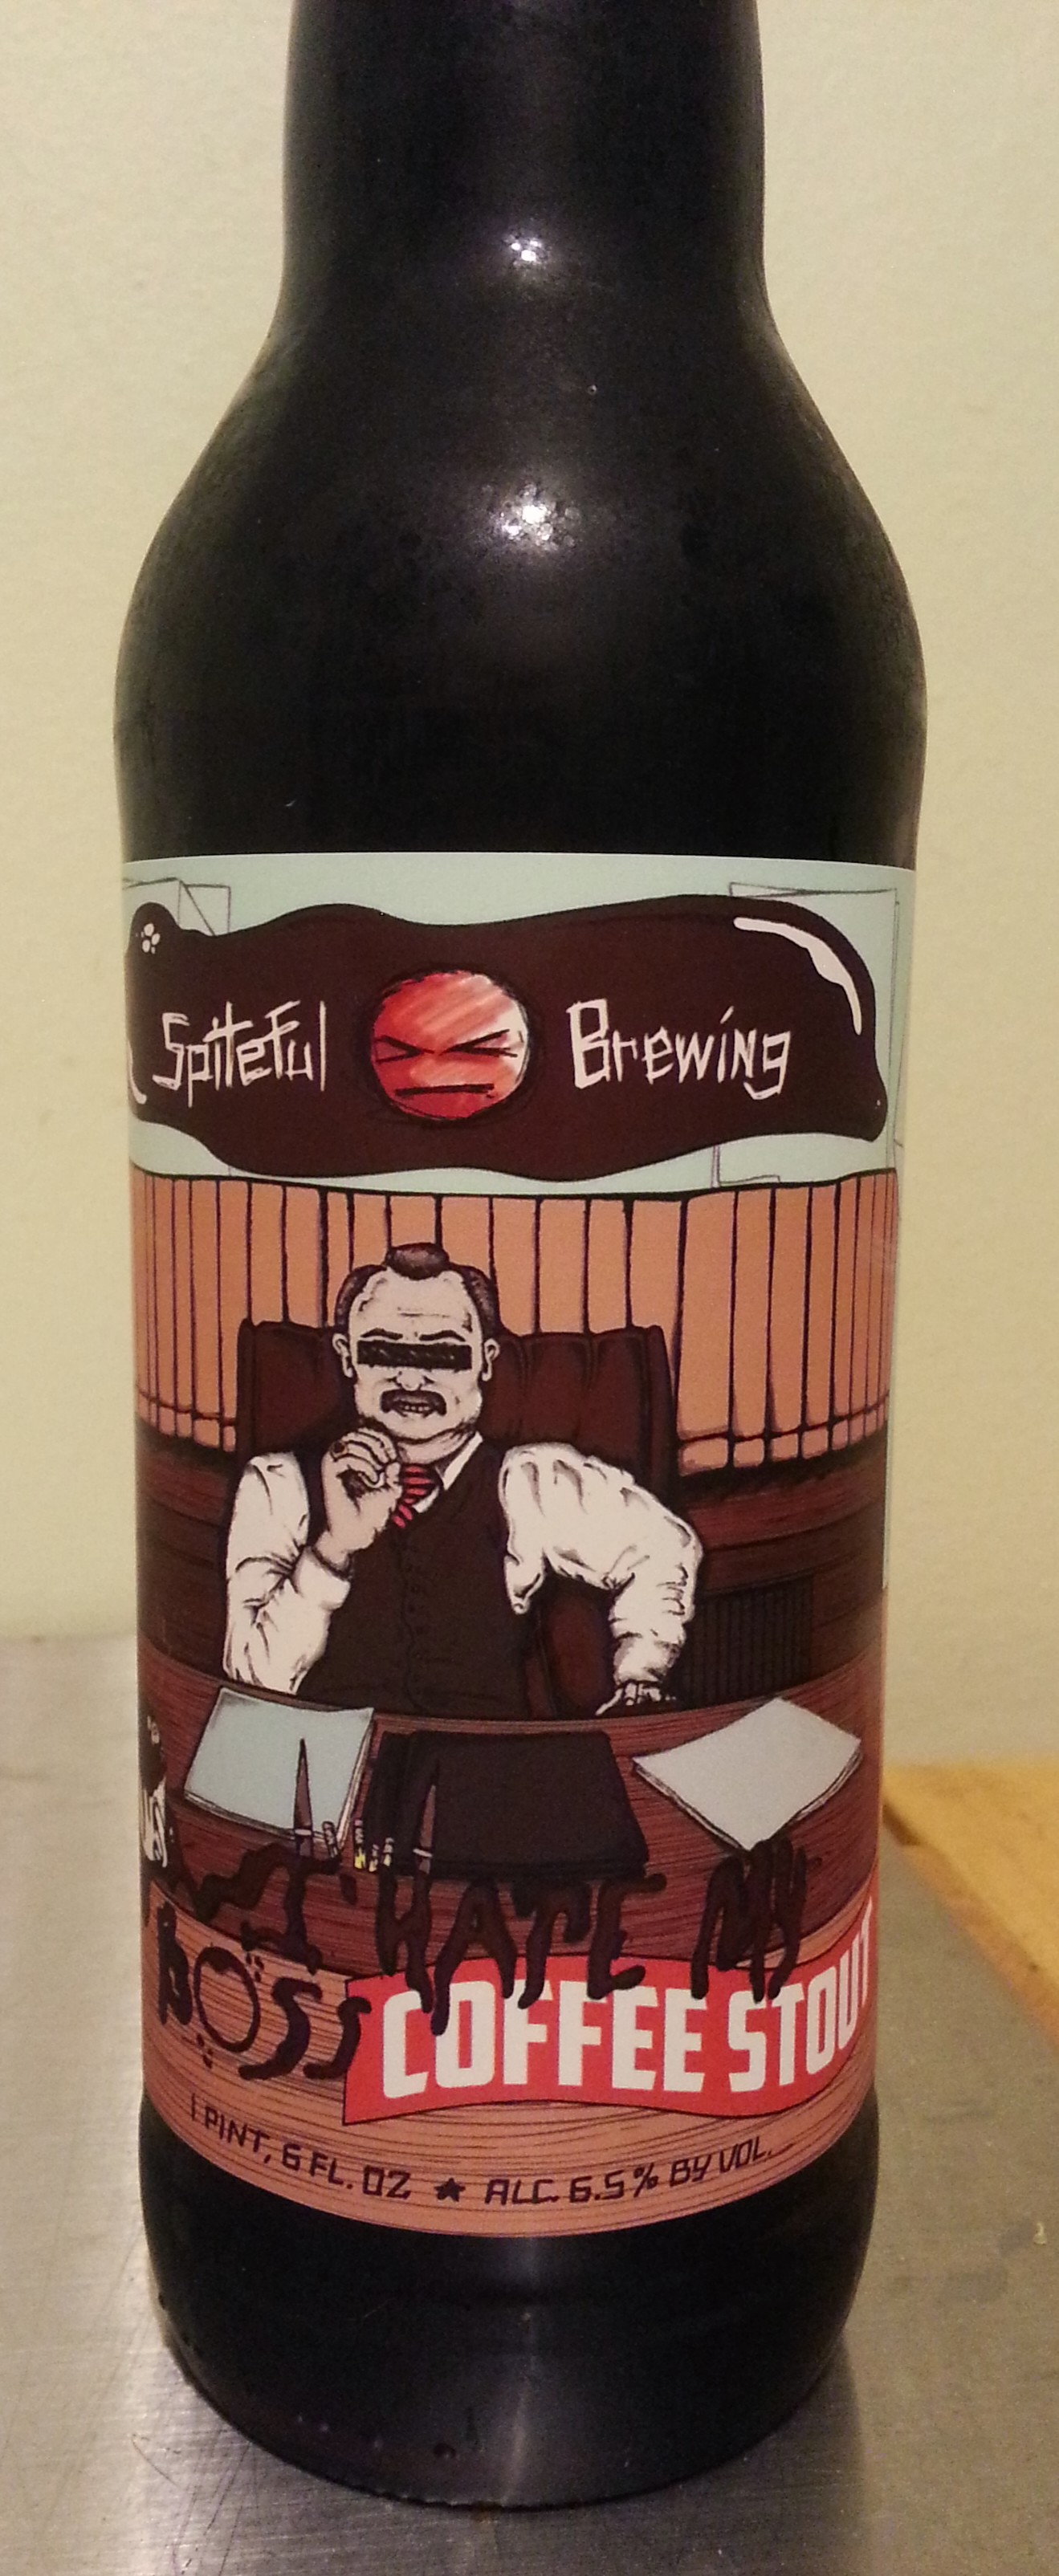 I Hate My Boss Coffee Stout Label